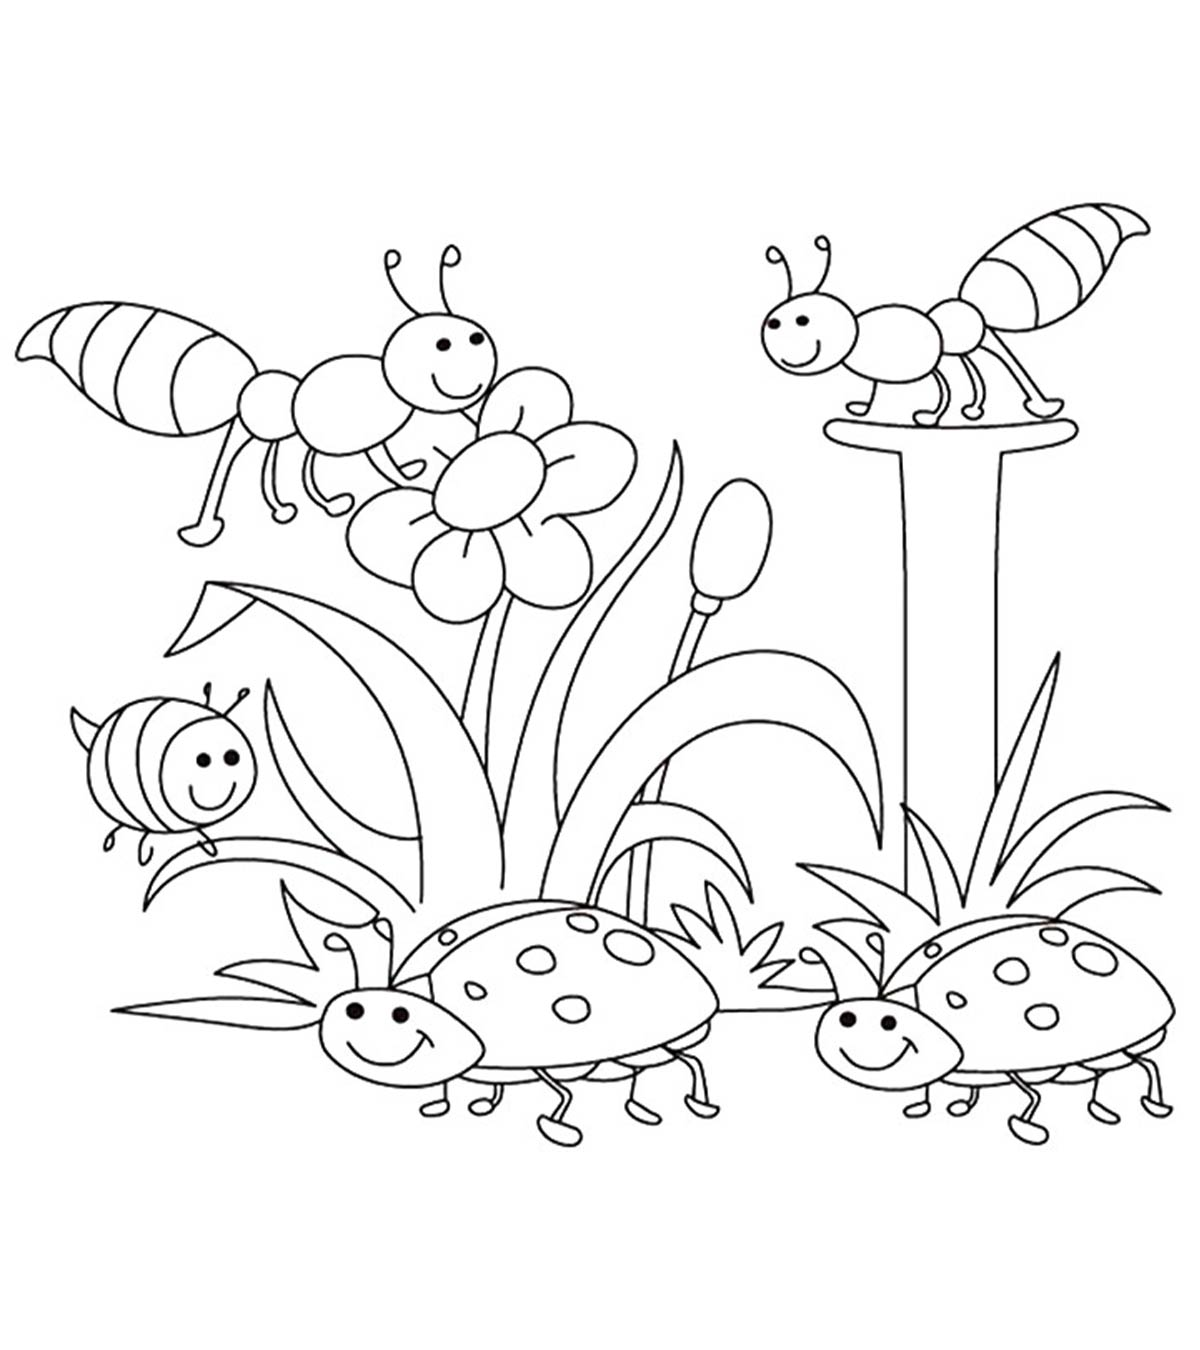 Easy Landscape Coloring Pages | Collection Images | 1350x1200